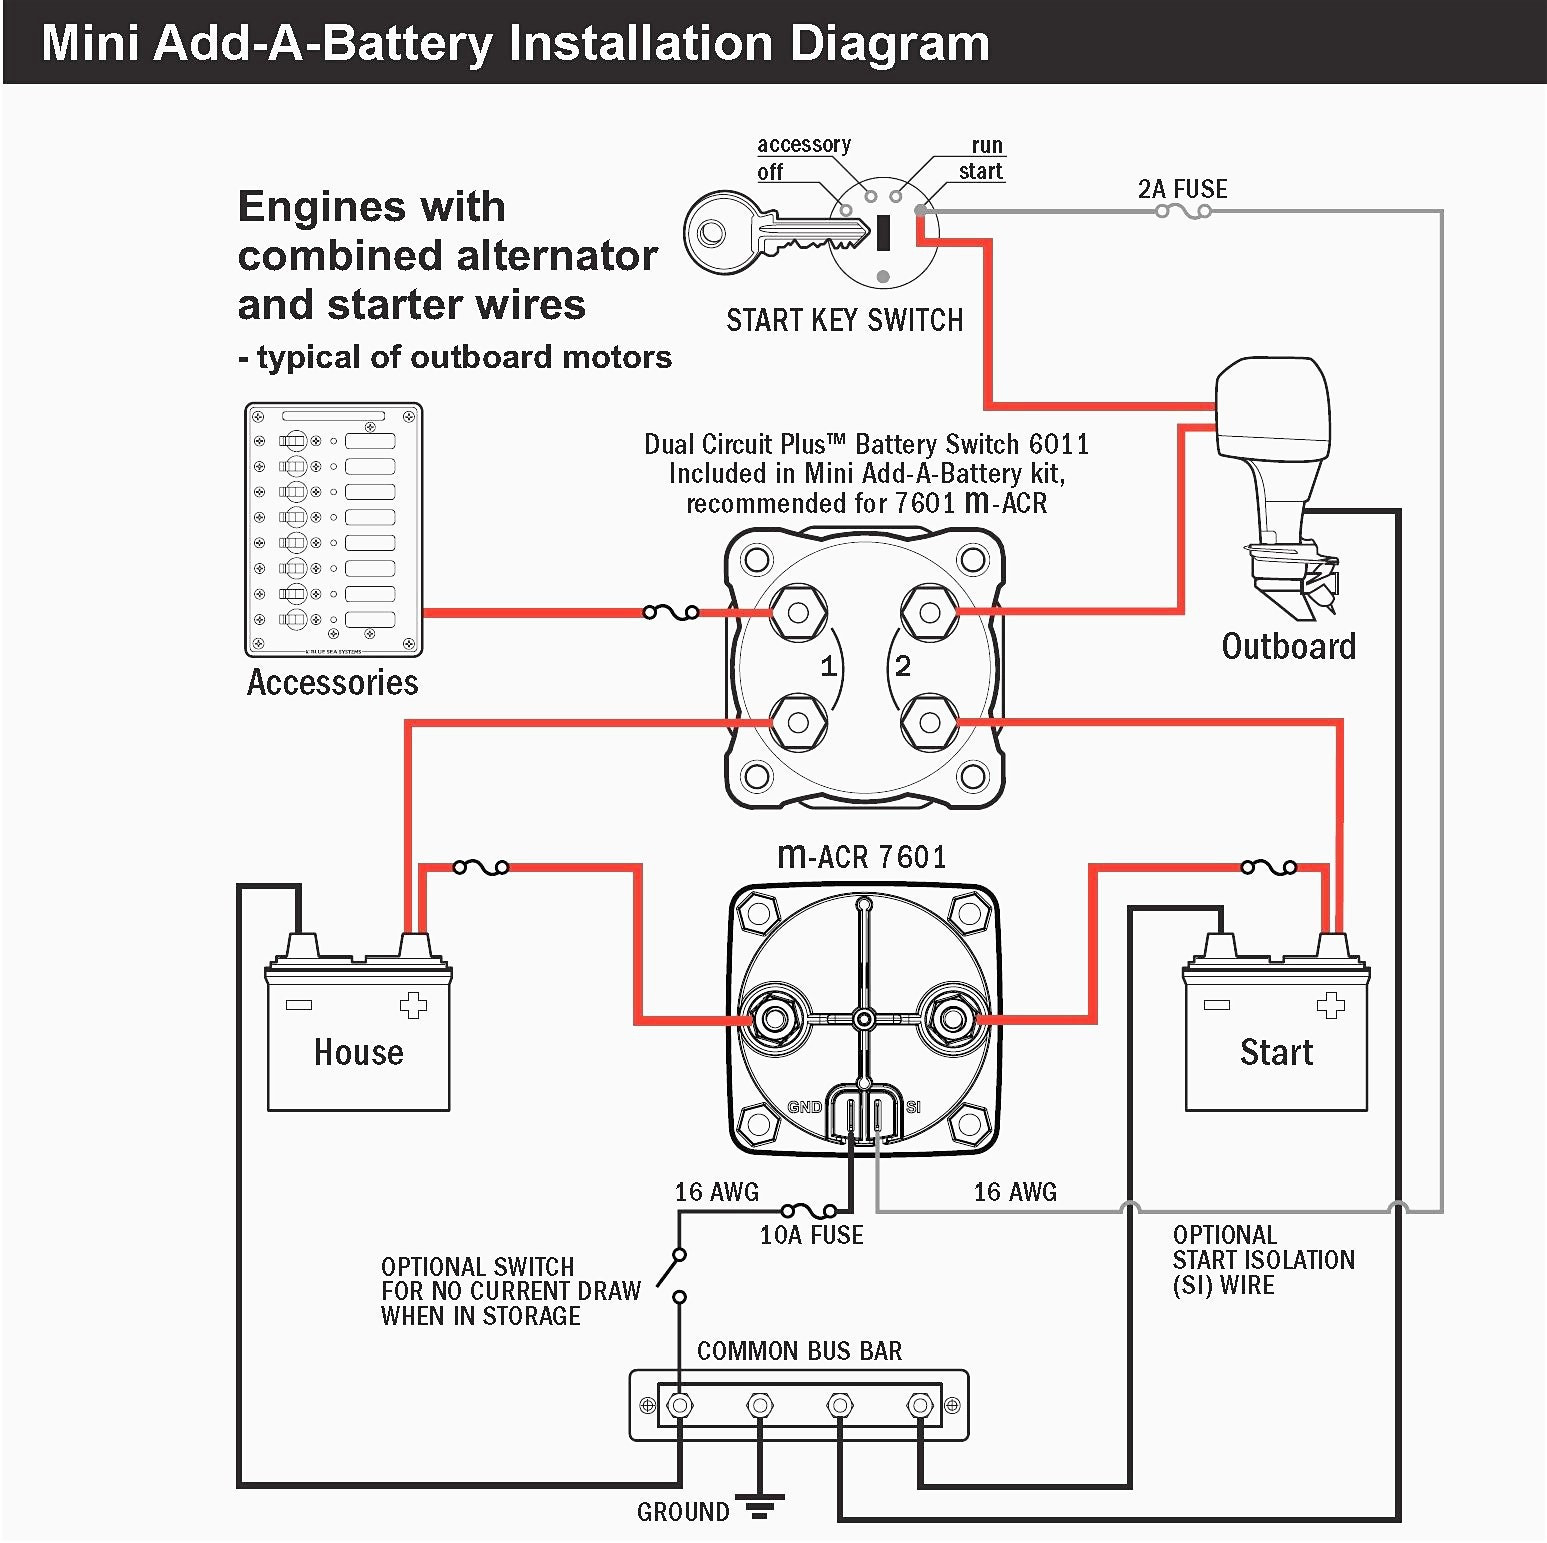 rv battery disconnect switch wiring diagram Download-Wiring Diagram For Alternator To Battery Inspirationa Awesome Rv Battery Disconnect Switch Wiring Diagram Wiring 1-c